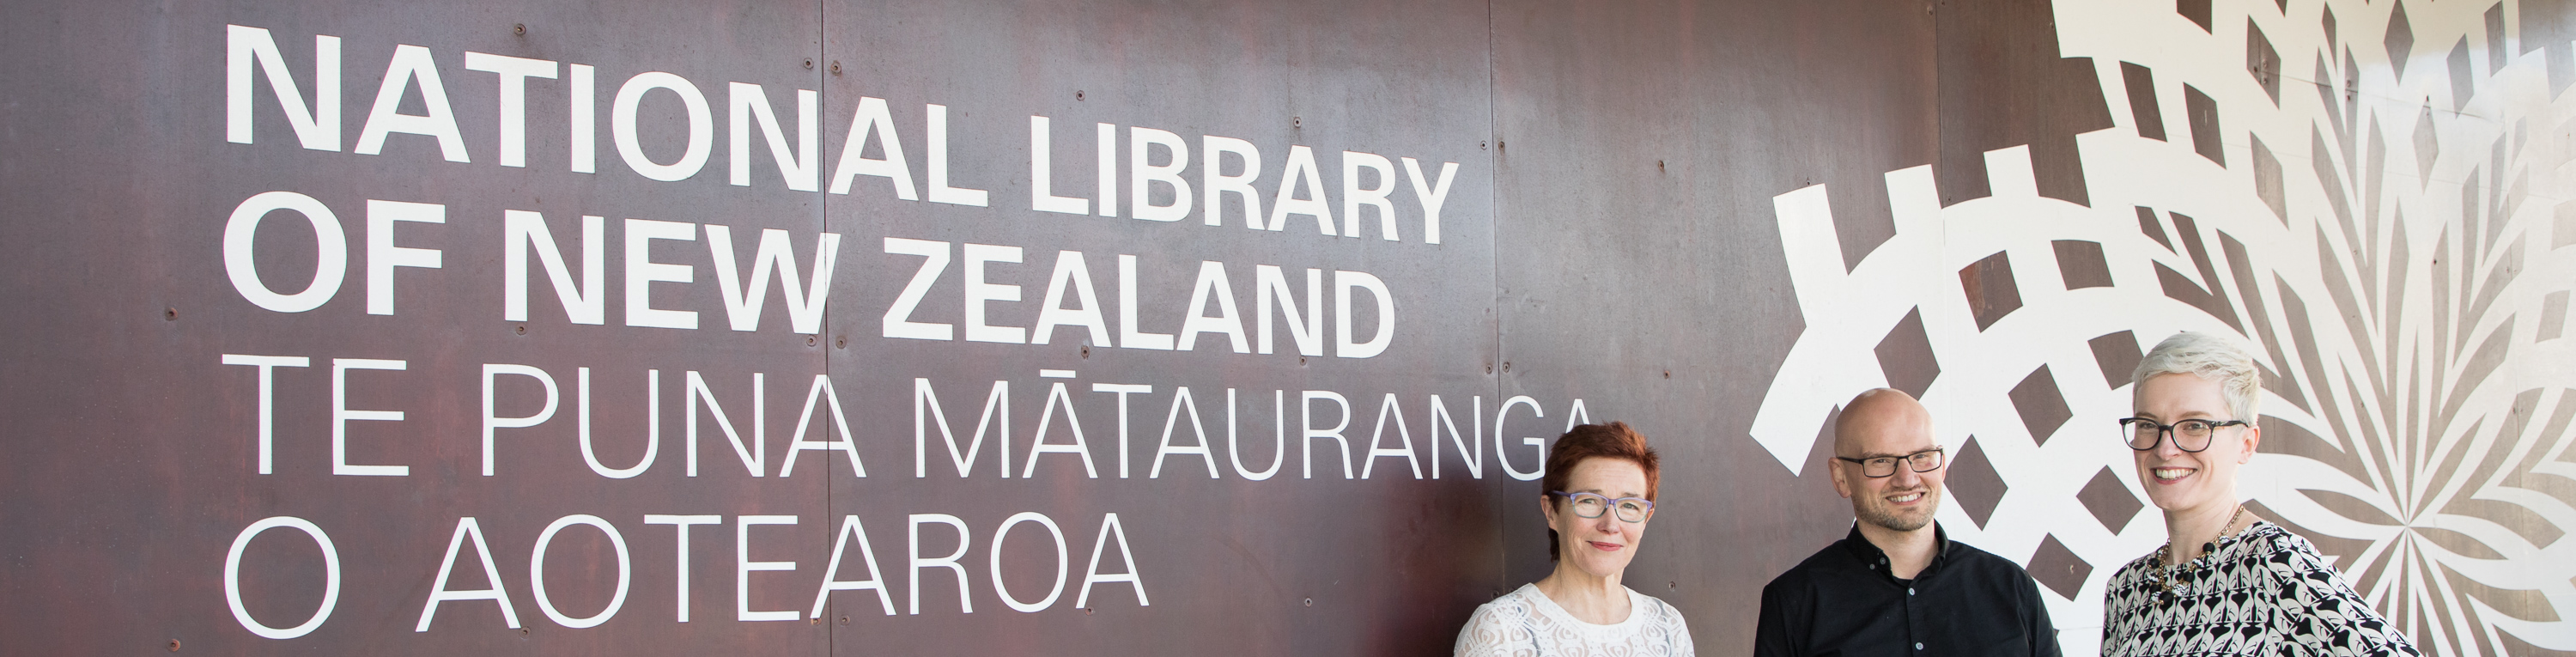 Two women and one man standing in front of a sign that reads National Library of New Zealand Te Puna Mātauranga o Aotearoa.